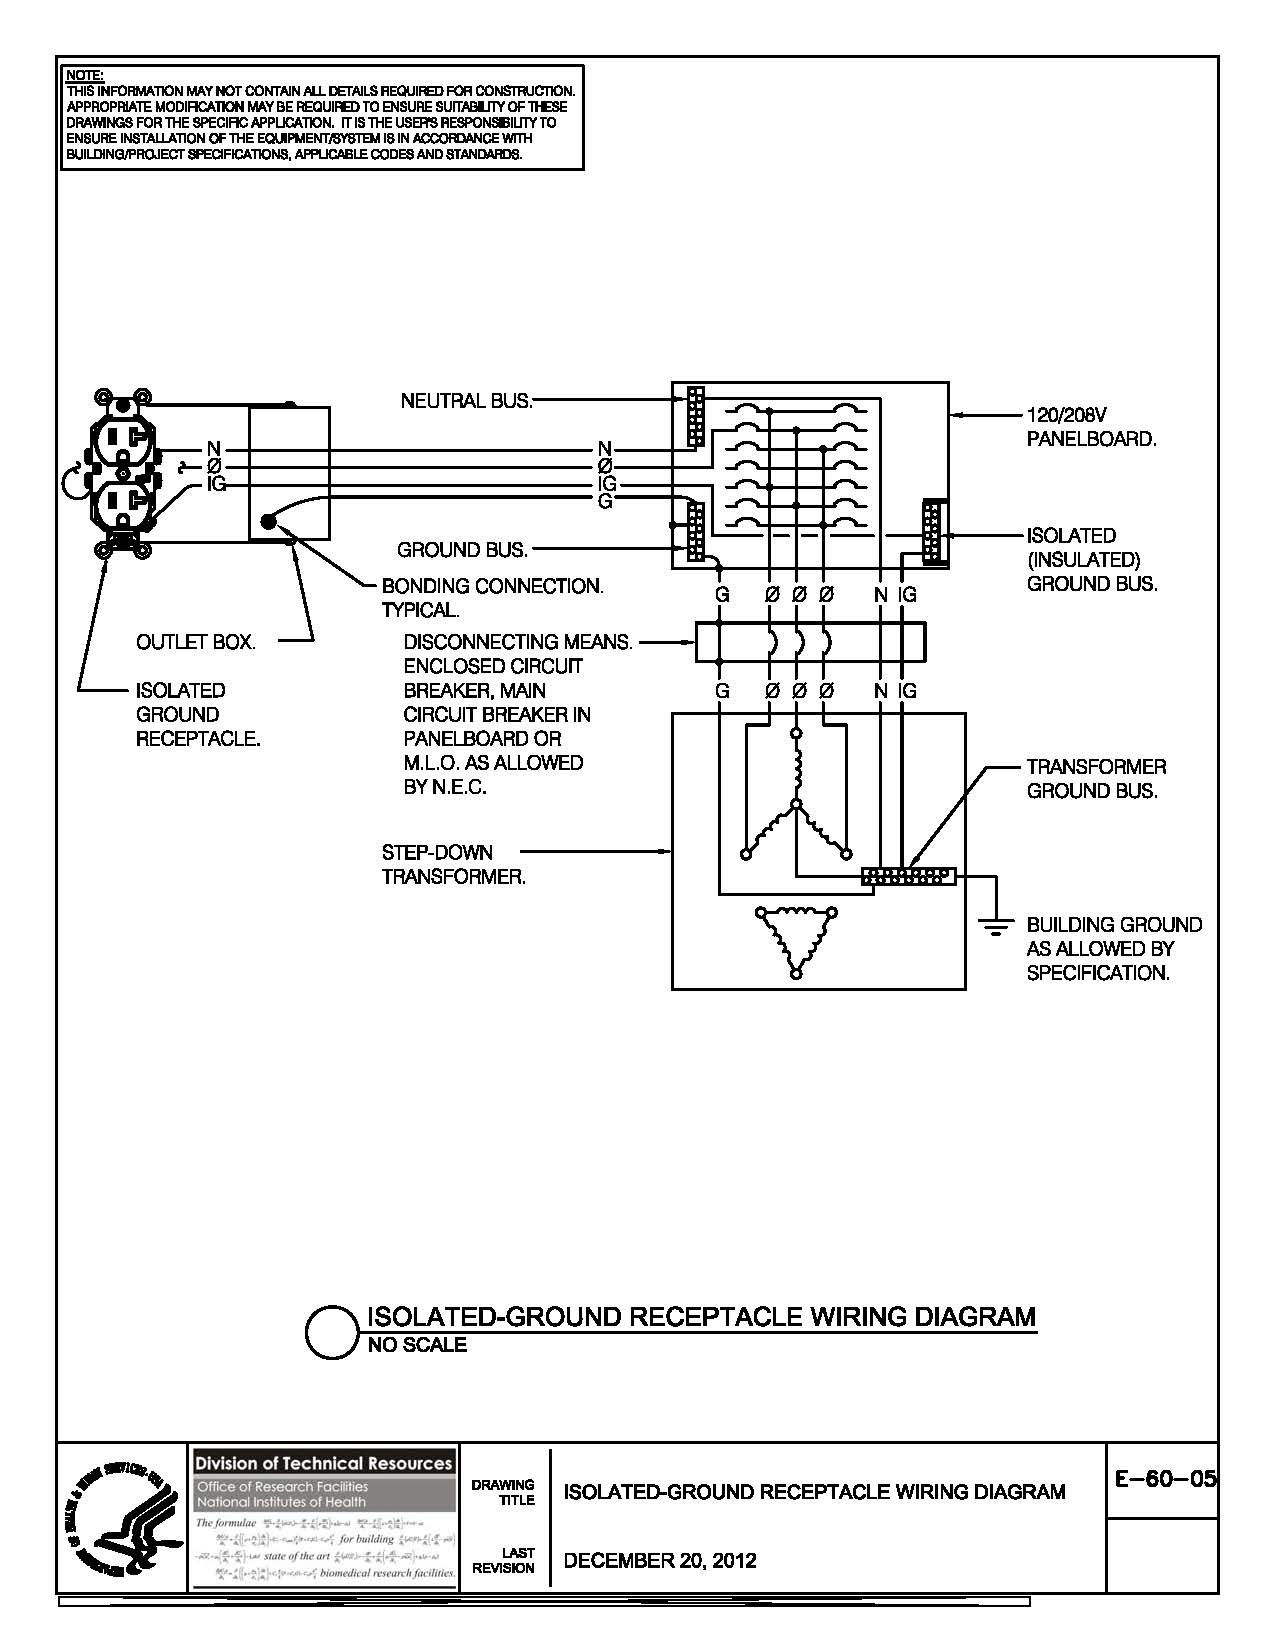 ... duplex pump control panel wiring diagram Collection Duplex Pump Control Panel  Wiring Diagram Lovely Nih Wiring